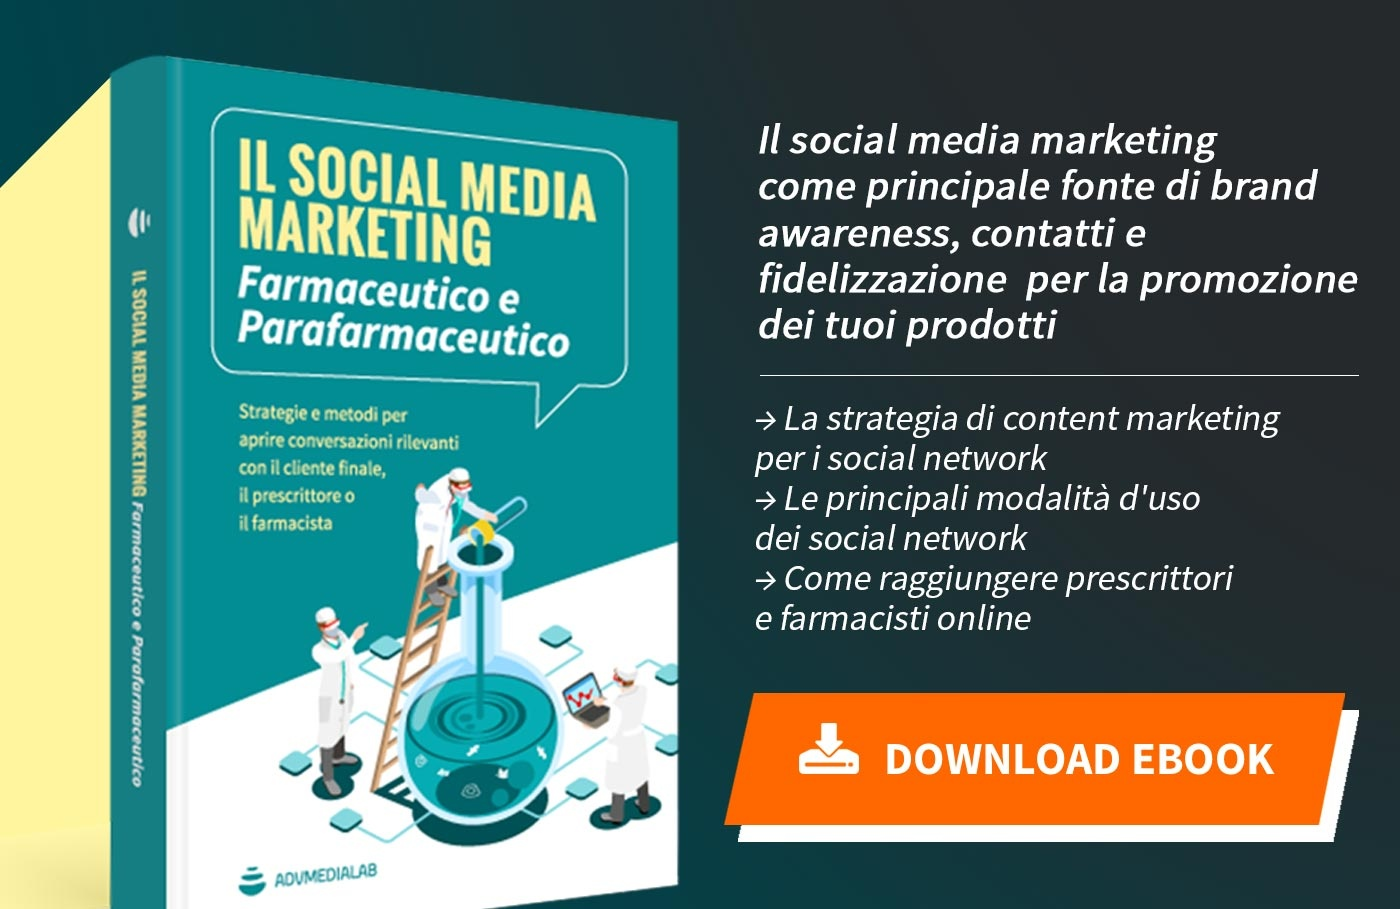 Marketing Farmaceutico Libro Come Creare Un Brand Farmaceutico O Parafarmaceutico Rilevante E